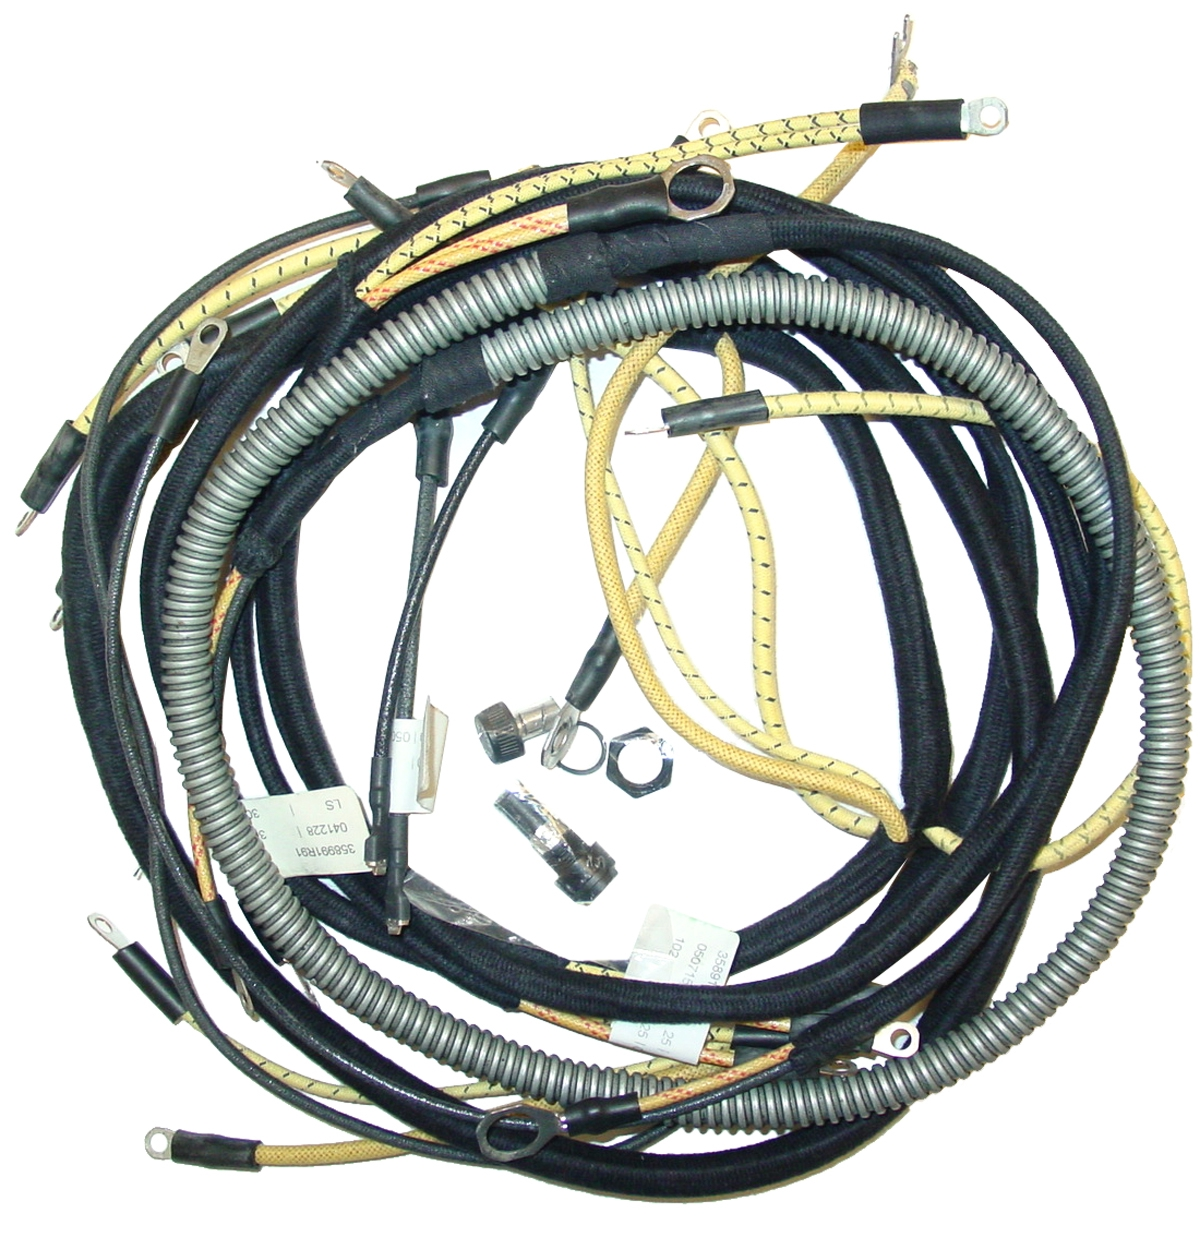 Wiring Harness Overseas Jobs : Wiring harness case ih parts tractor